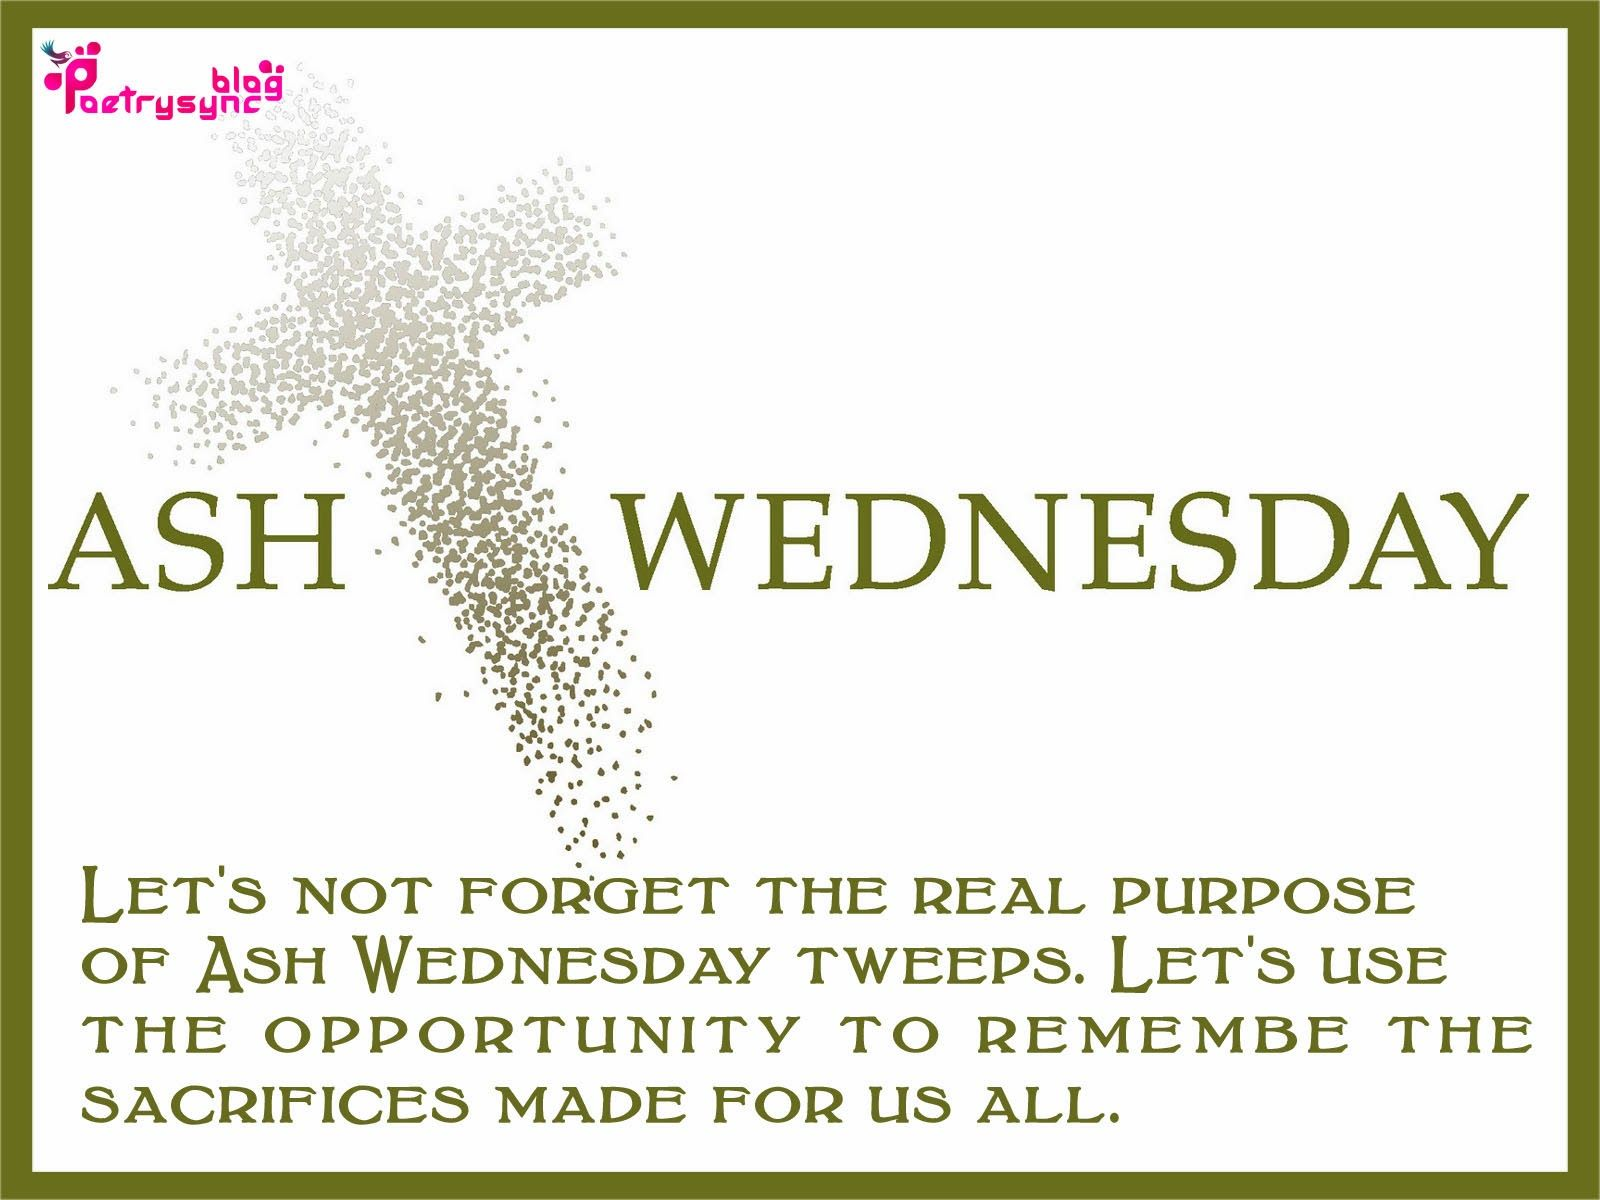 Ash wednesday wishes and greetings image with quote saying ash ash wednesday wishes and greetings image with quote saying kristyandbryce Images